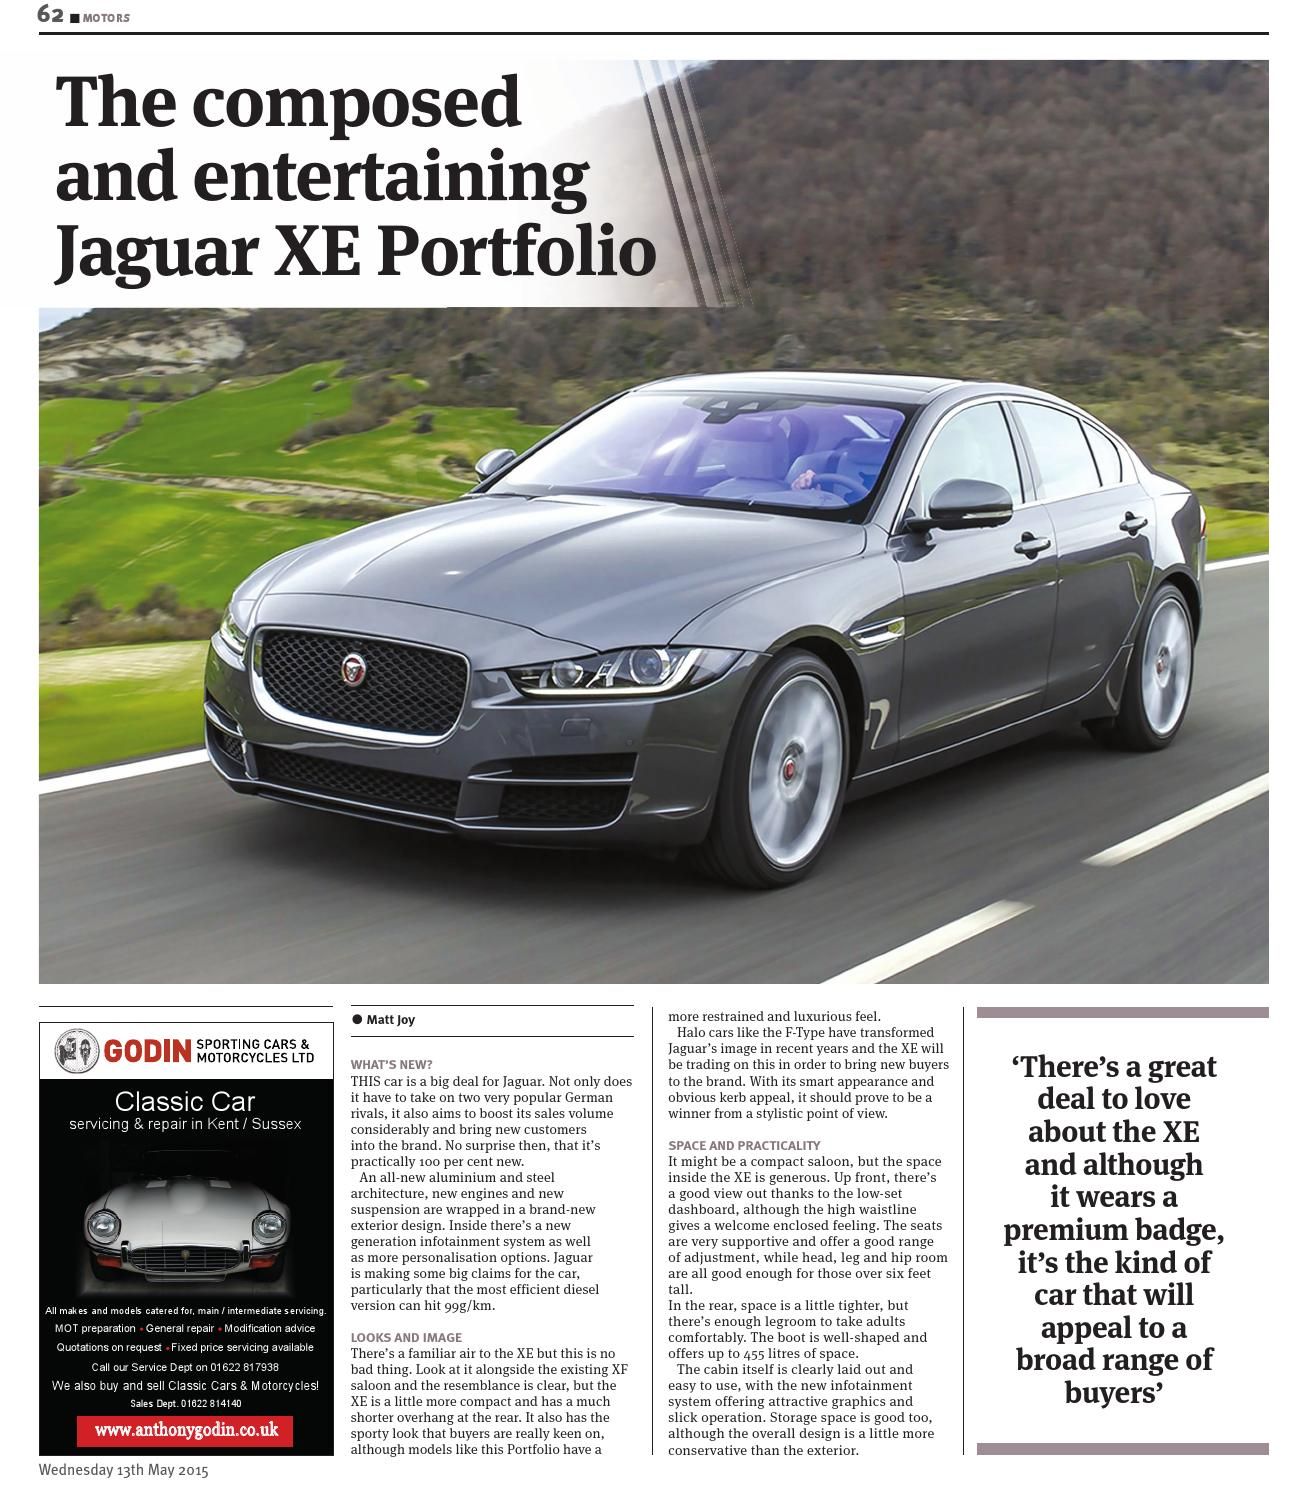 Times of Tunbridge Wells Issue 11 May 13th 2015 by One Media